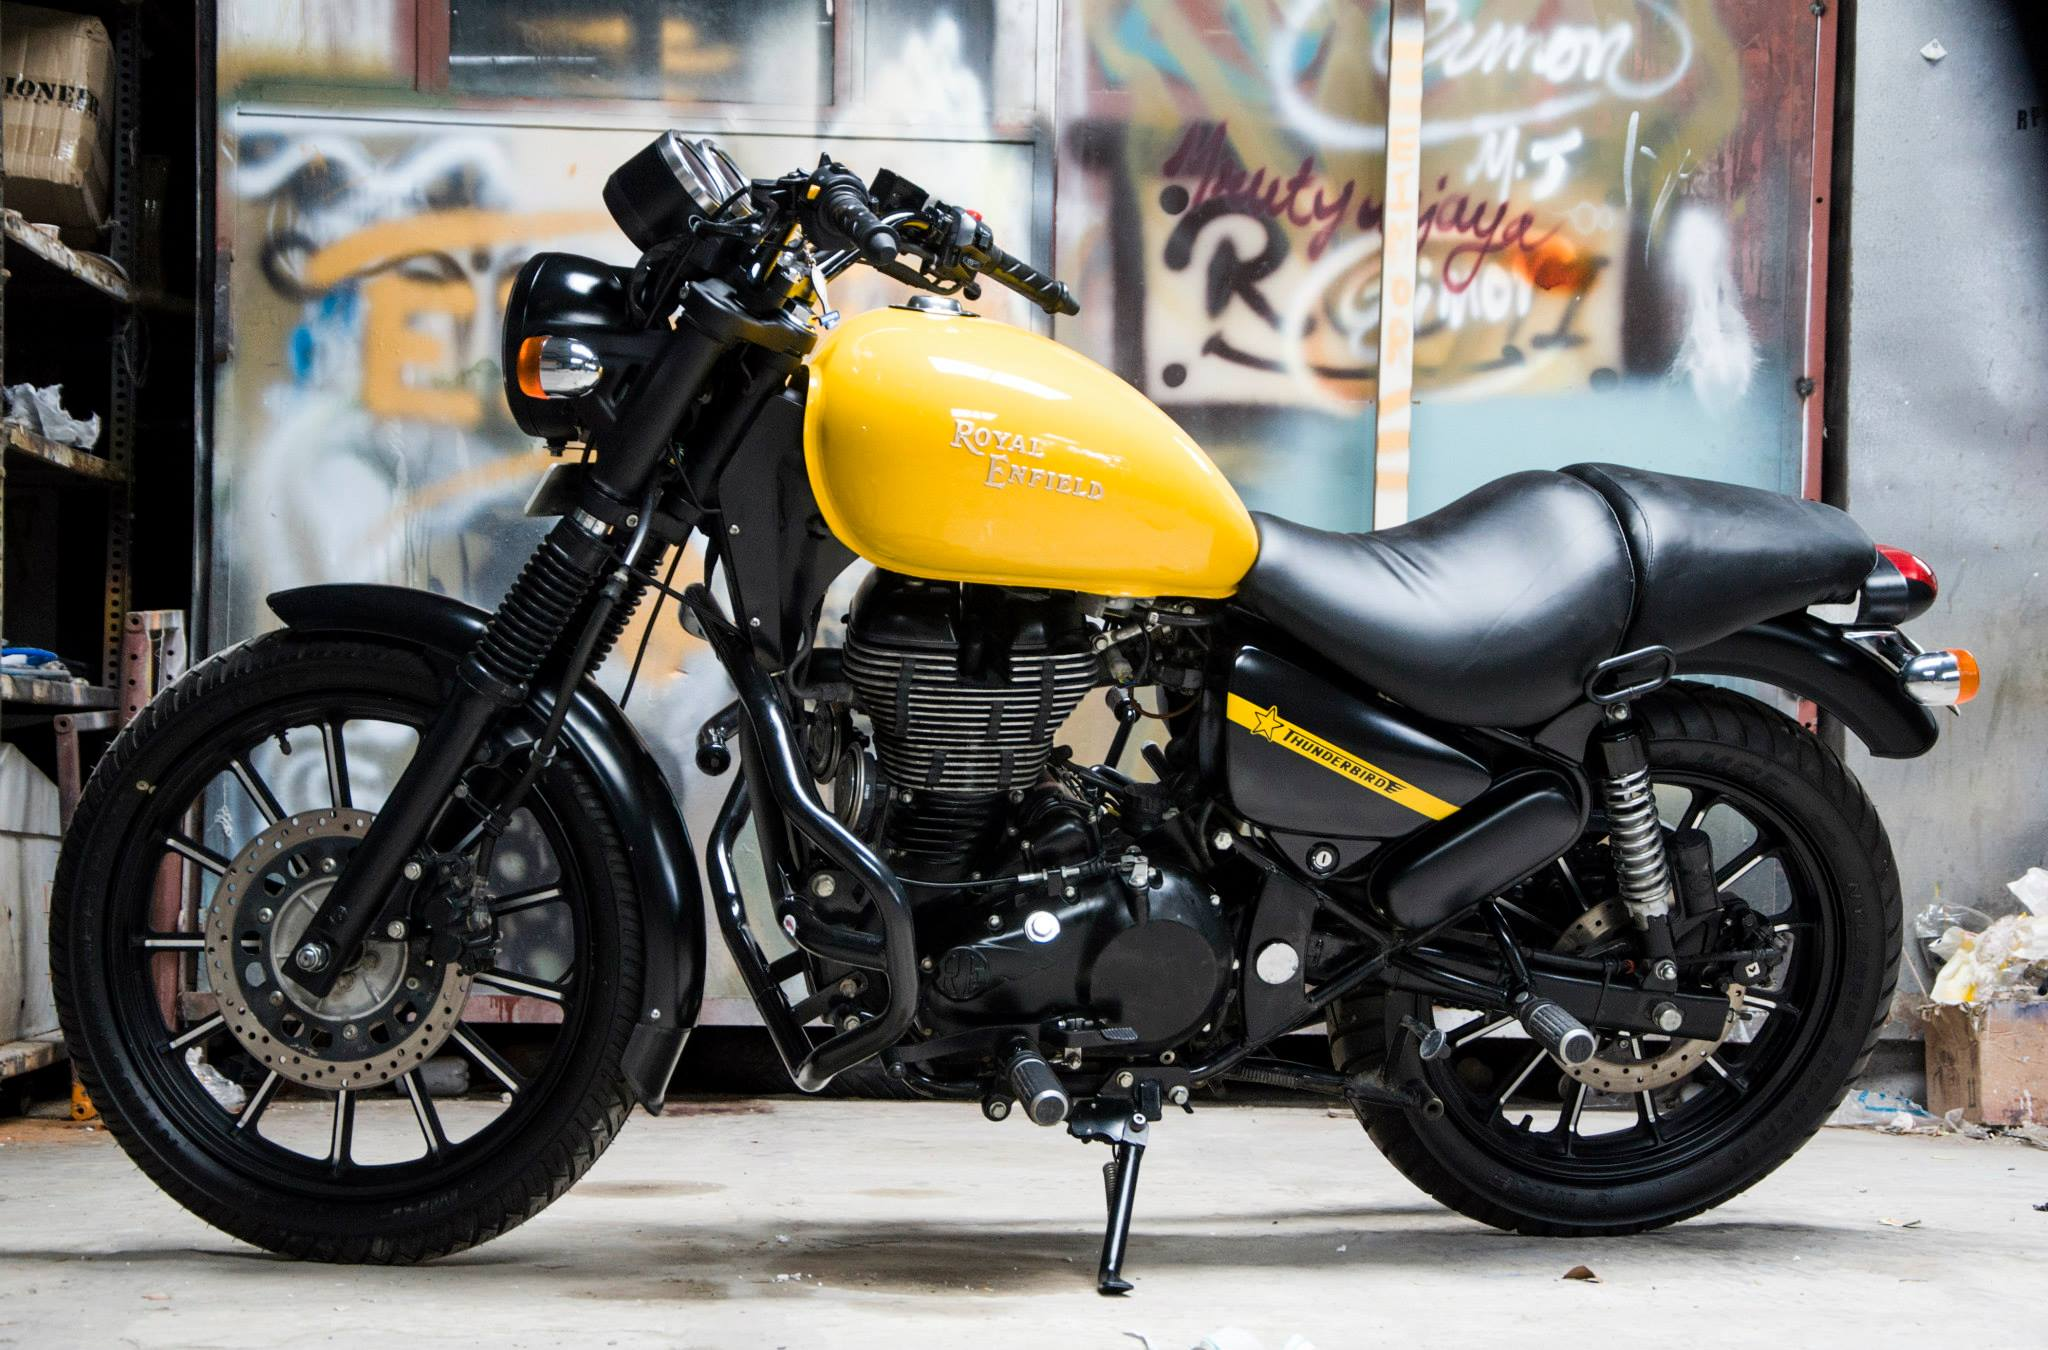 You Will Fall In Love With This Royal Enfield Thunderbird